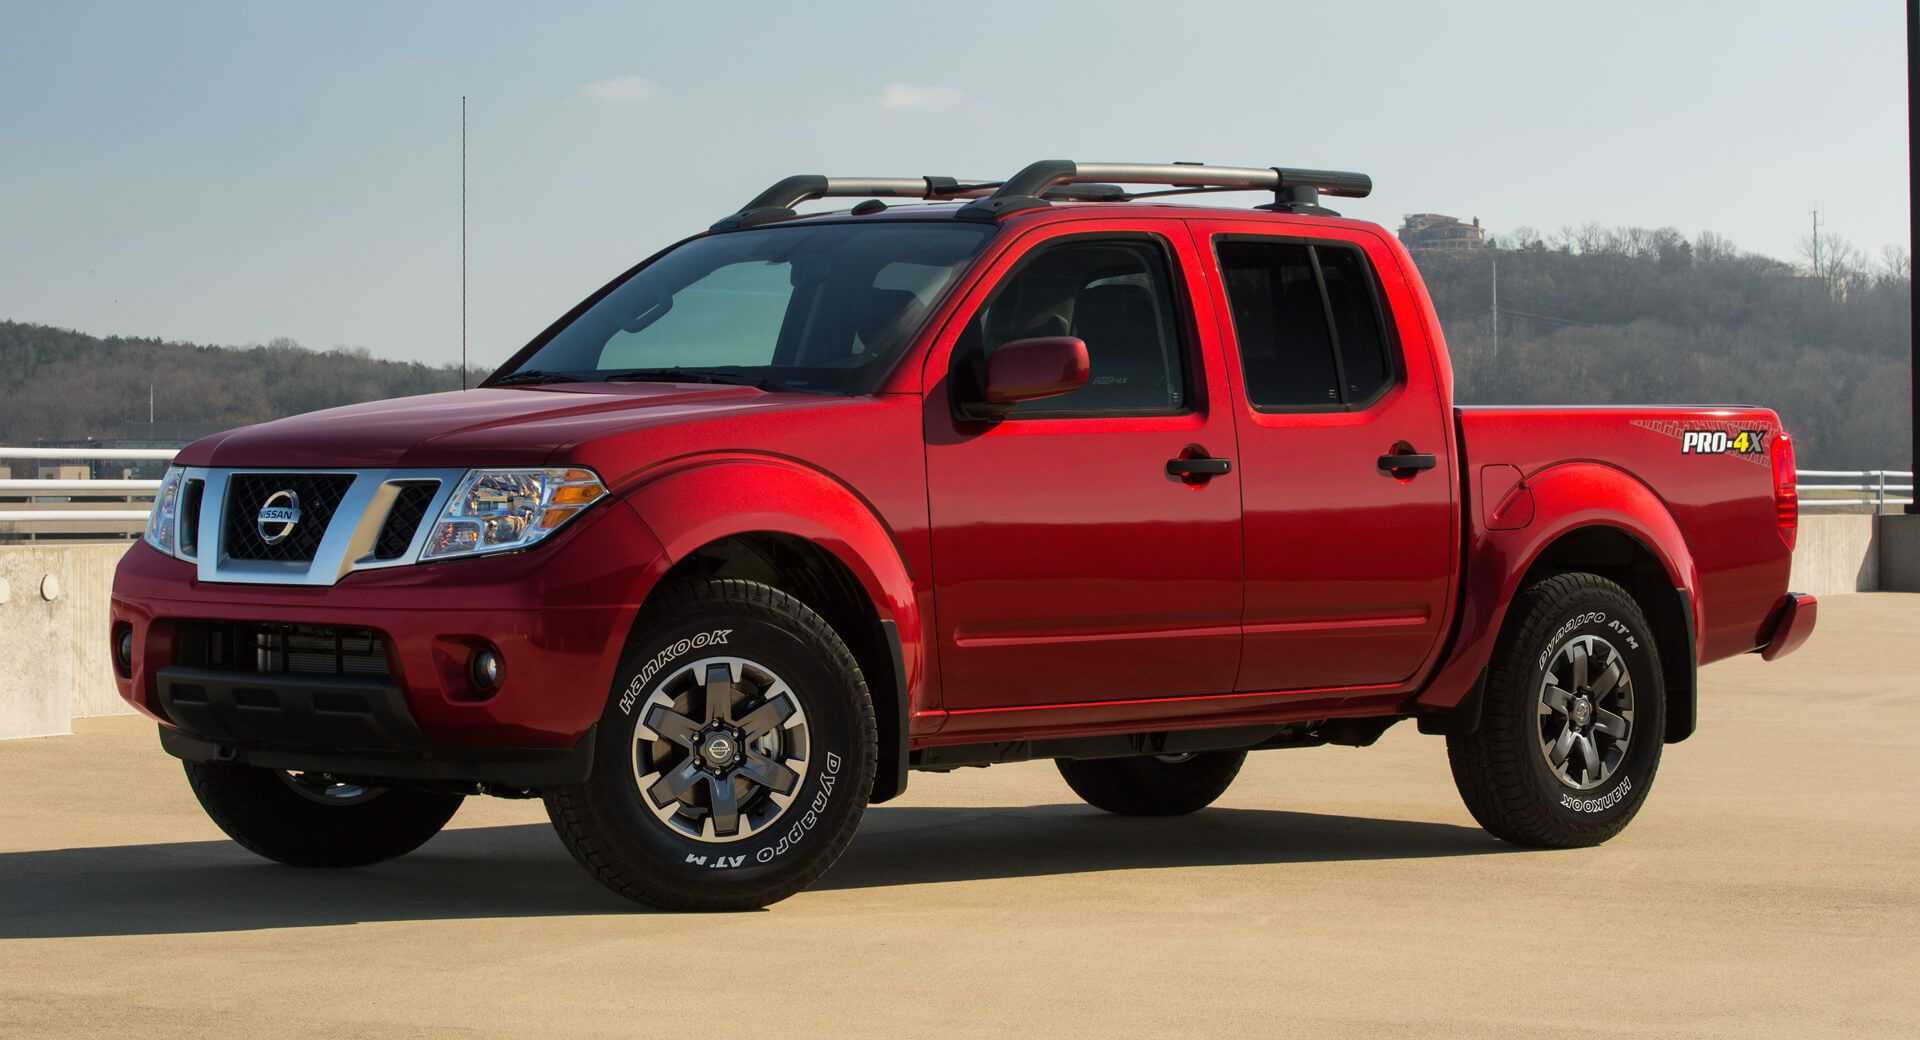 New-Gen 2021 Nissan Frontier Due Later This Year, 2020MY To Launch Shortly #nissan #nissanfrontier #reports #cars #carsofinstagram #carporn #carlifestyle #carnewsnetwork #carswithoutlimits #carspotting #dailycar #cardaily